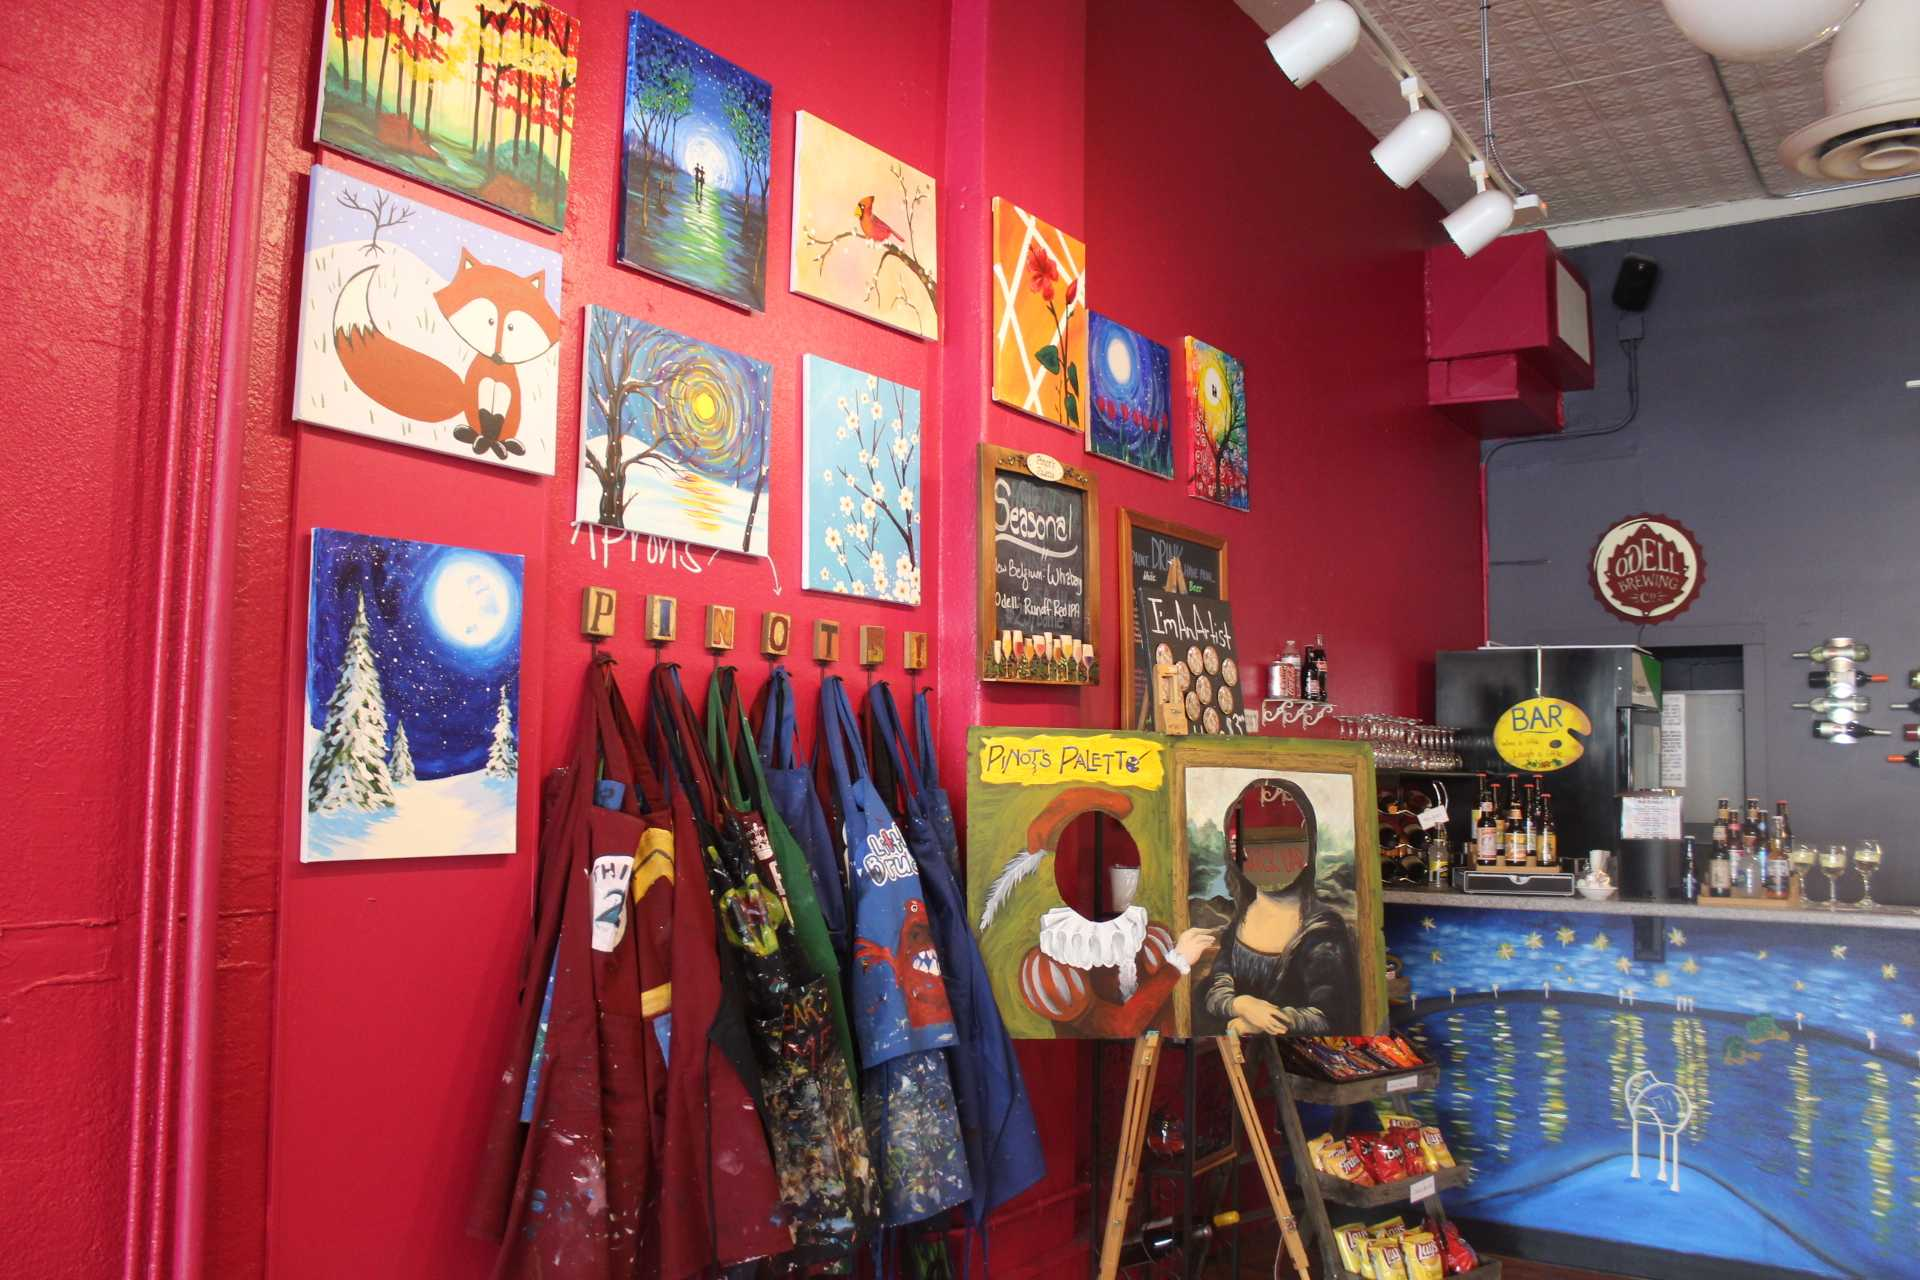 painting smocks hung on wall with paintings at Pinot's Palette